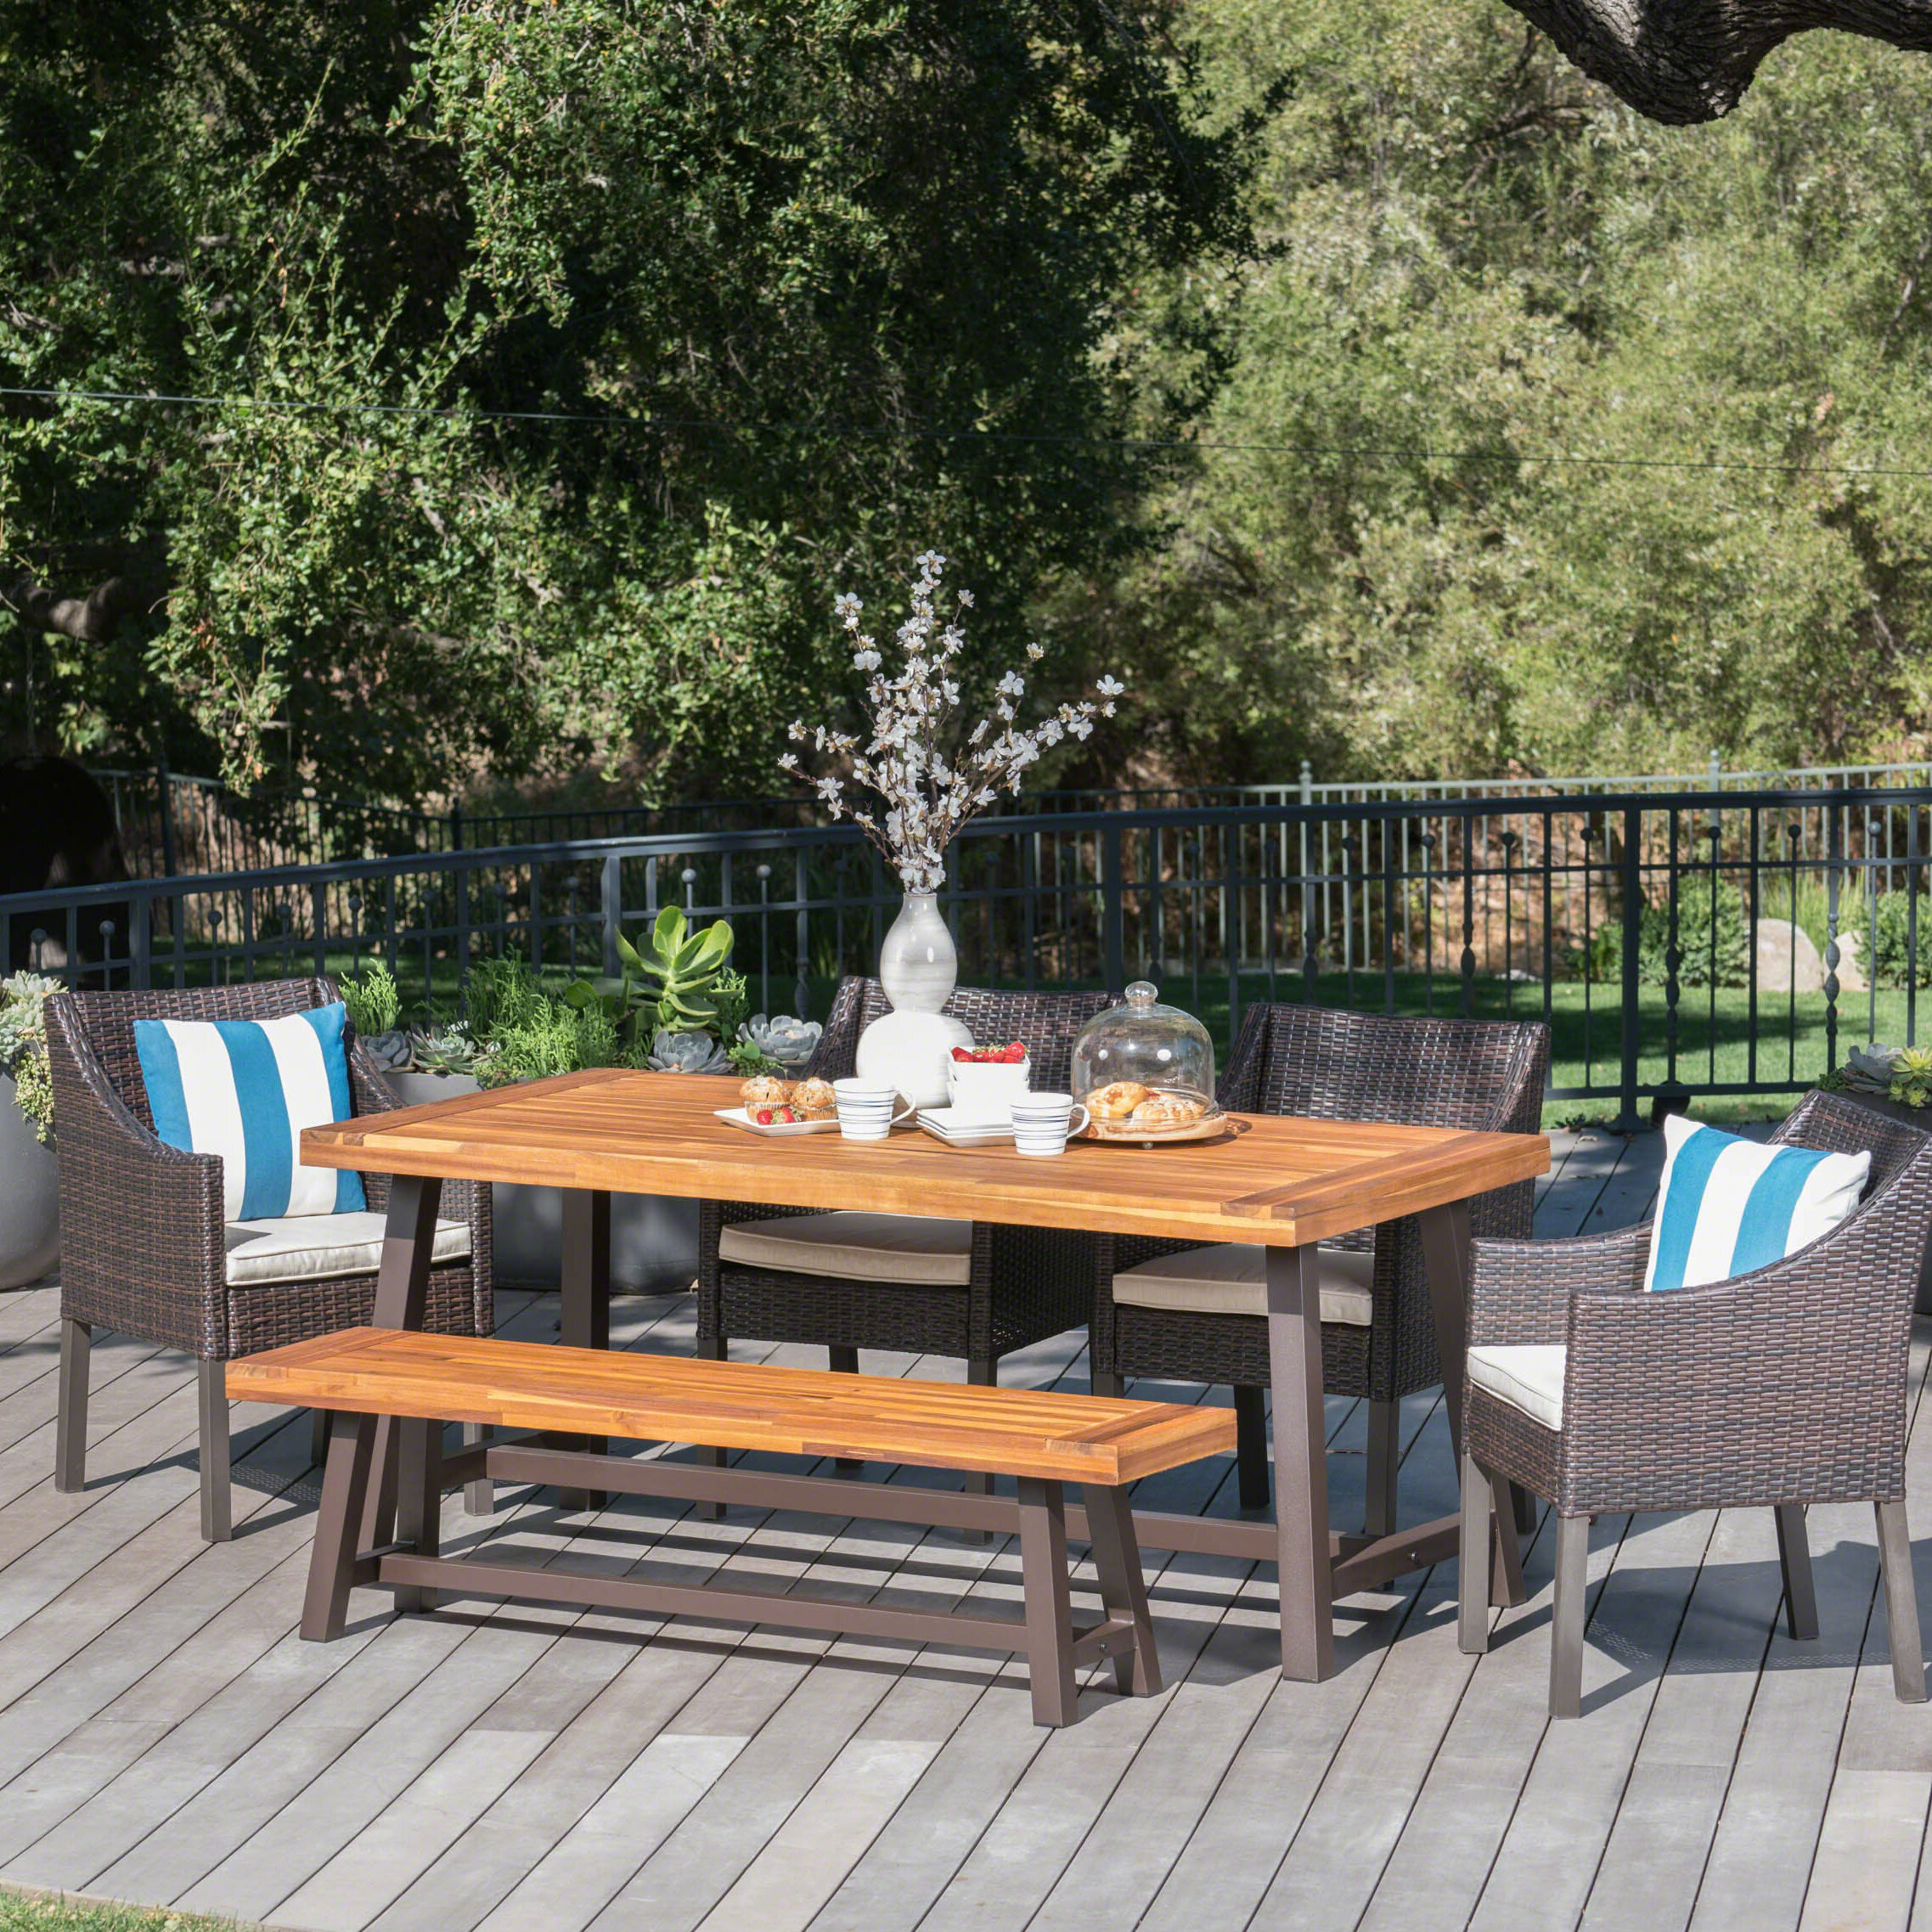 Brayden Studio Belterra Wicker And Wood Outdoor 6 Piece Dining Set With Cushion Reviews Wayfair